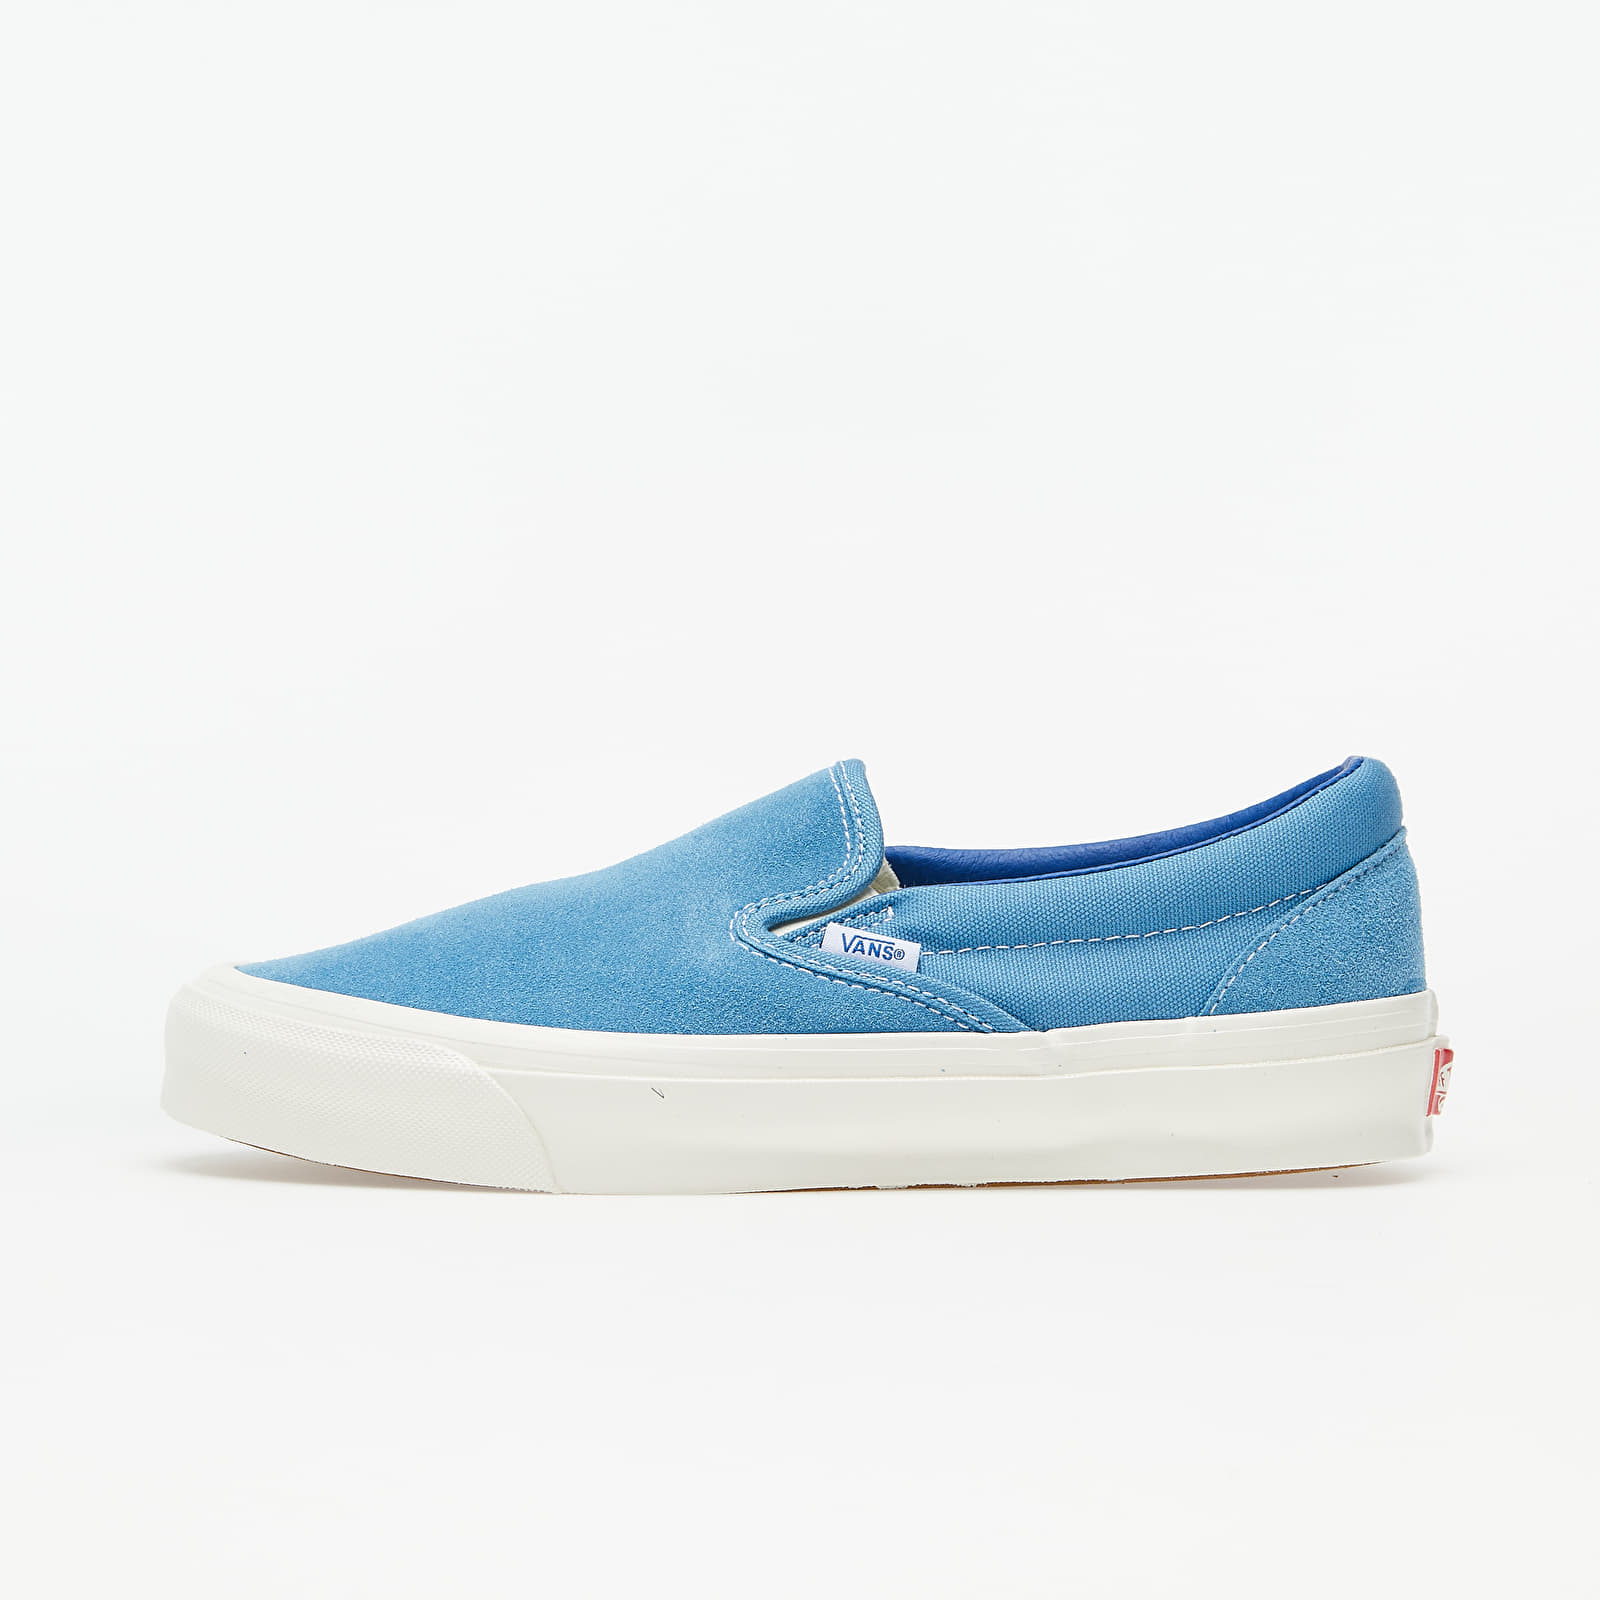 Vans OG Classic Slip-On (Suede/ Canvas) Night Raind EUR 36.5